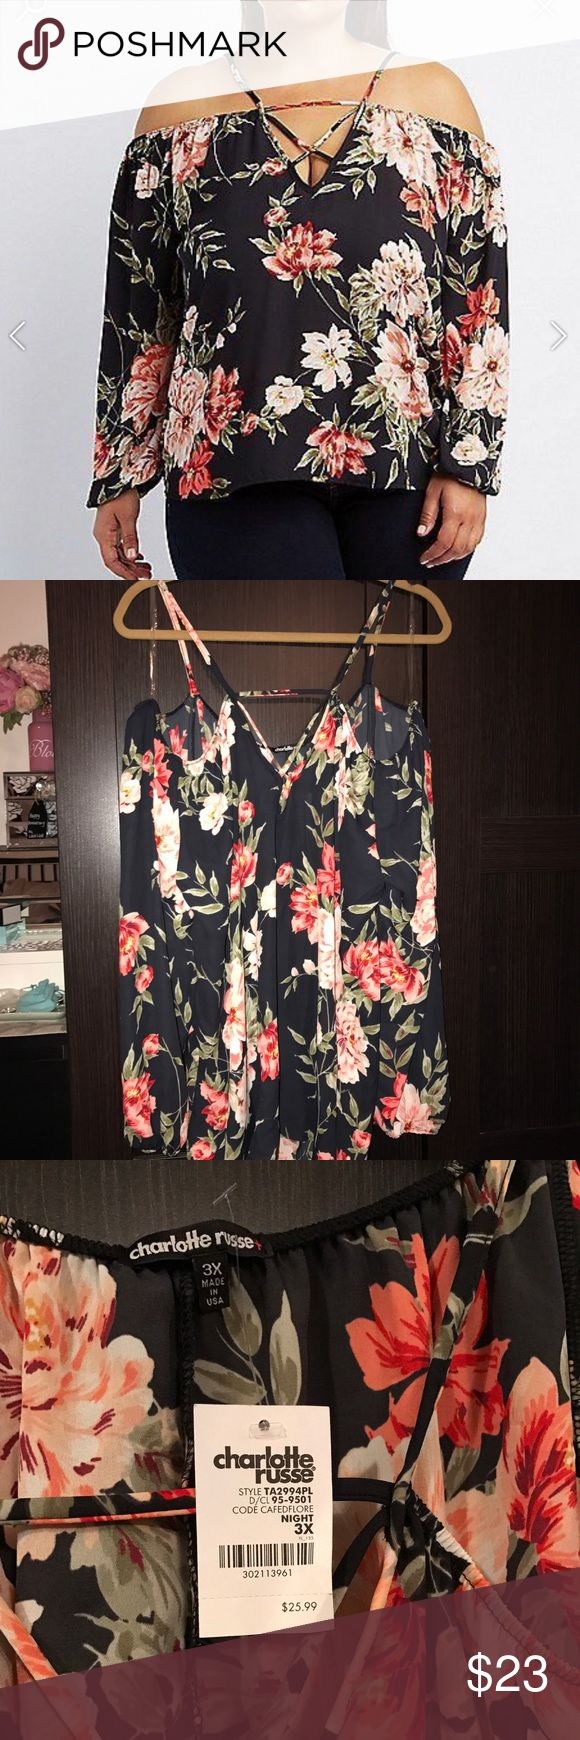 Charlotte Russe floral strappy top NWT Charlotte Russe floral strappy cold shoulder top. Bought recently Charlotte Russe Tops Blouses